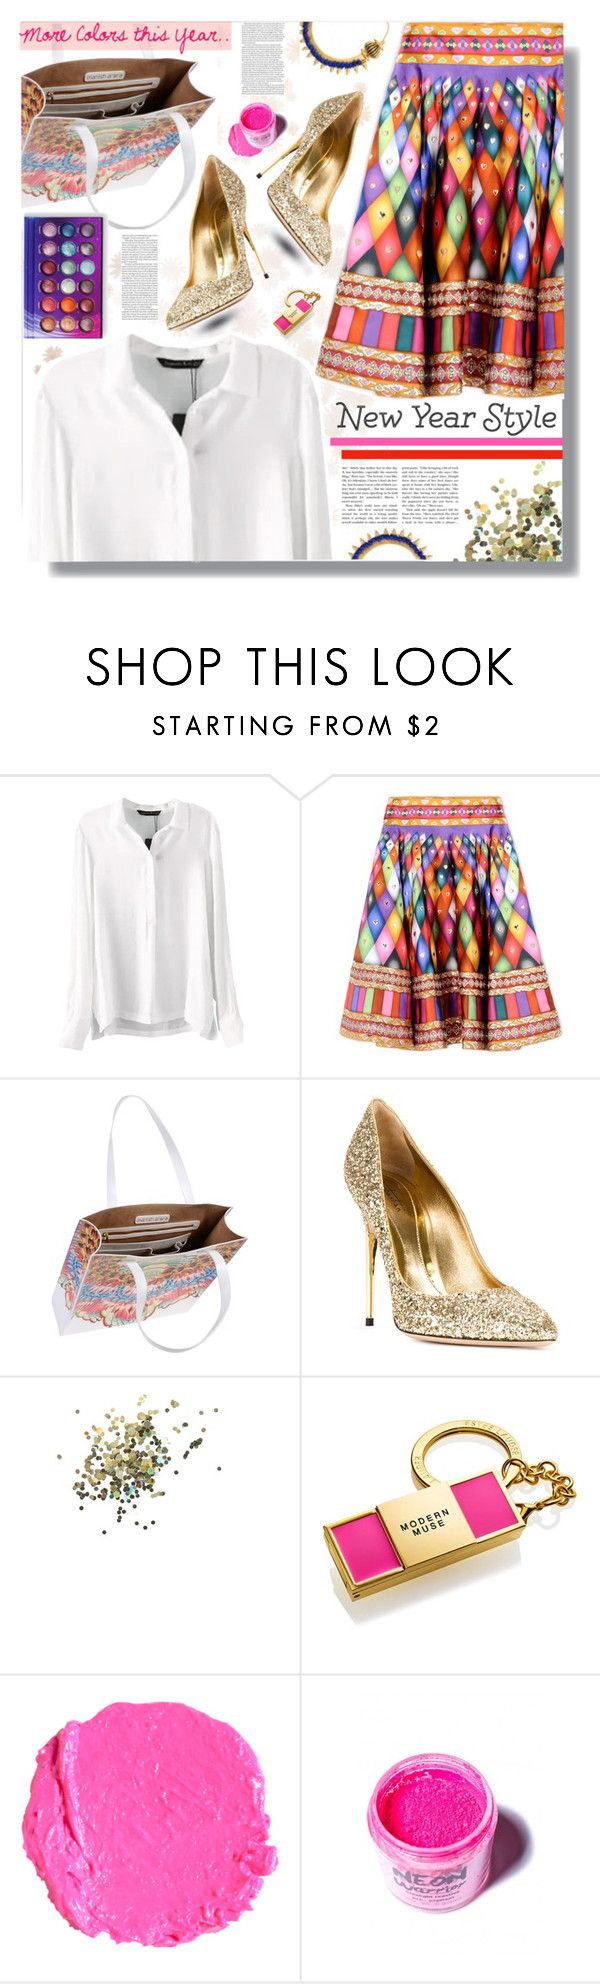 """New Year's Style Resolution"" by prigaut ❤ liked on Polyvore featuring Manish Arora, ASOS, Sebastian Milano, Topshop, Estée Lauder, Medusa's Makeup, women's clothing, women, female and woman"